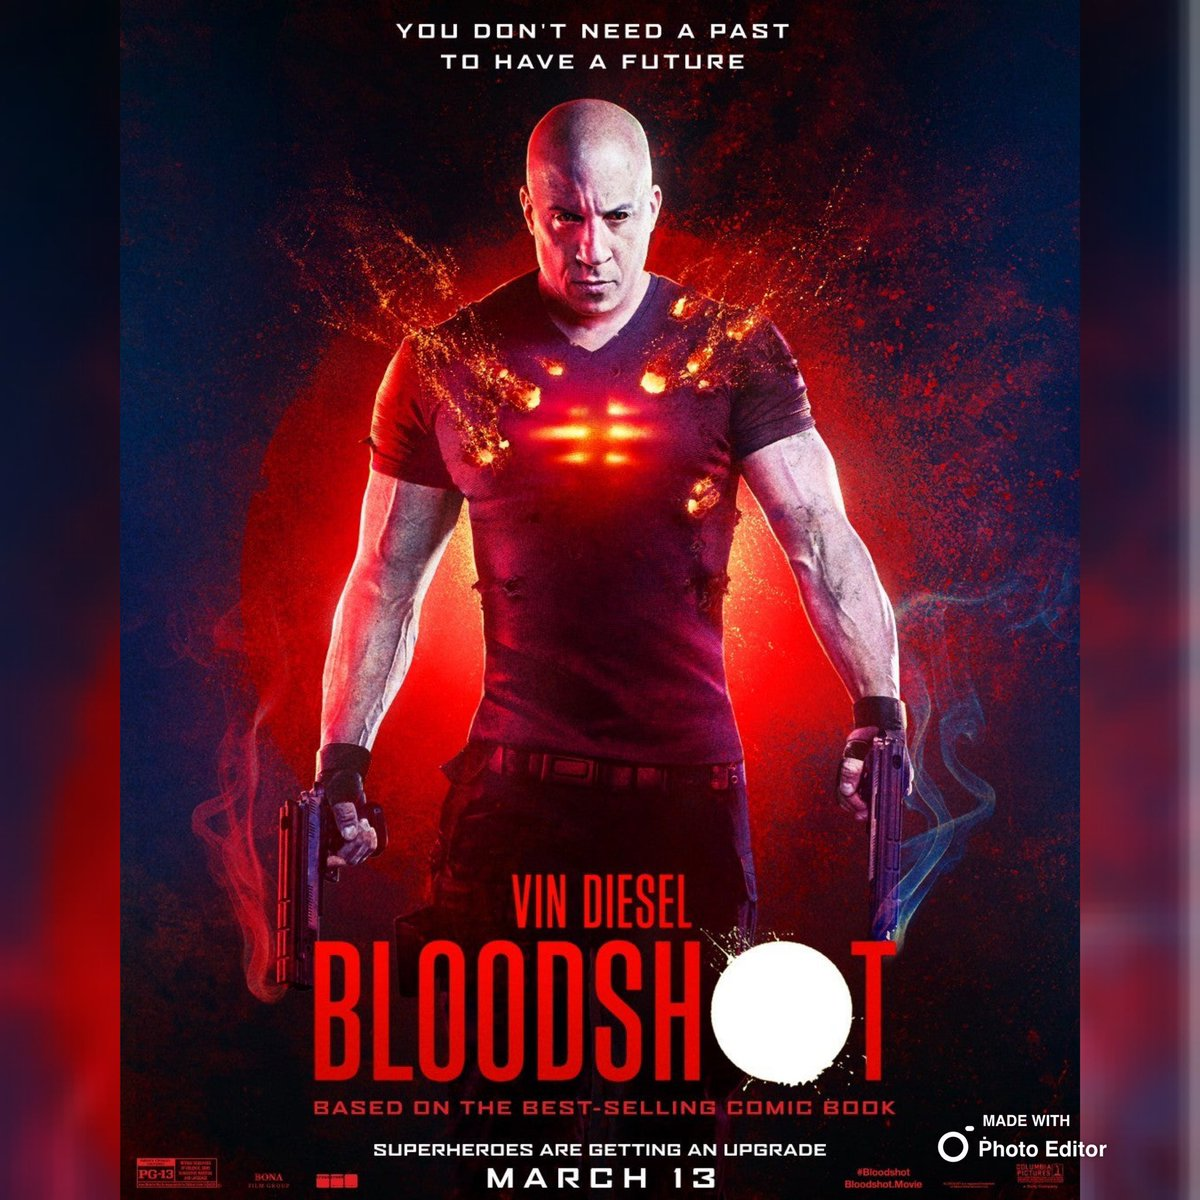 A little late but here are the 2 new Bloodshot posters for the new @valiantentertainment movie starring @vindiesel   #poster #art #movie #vindiesel #fastandfurious #riddick #comics #comic #bloodshot #film #march #booktoscreen